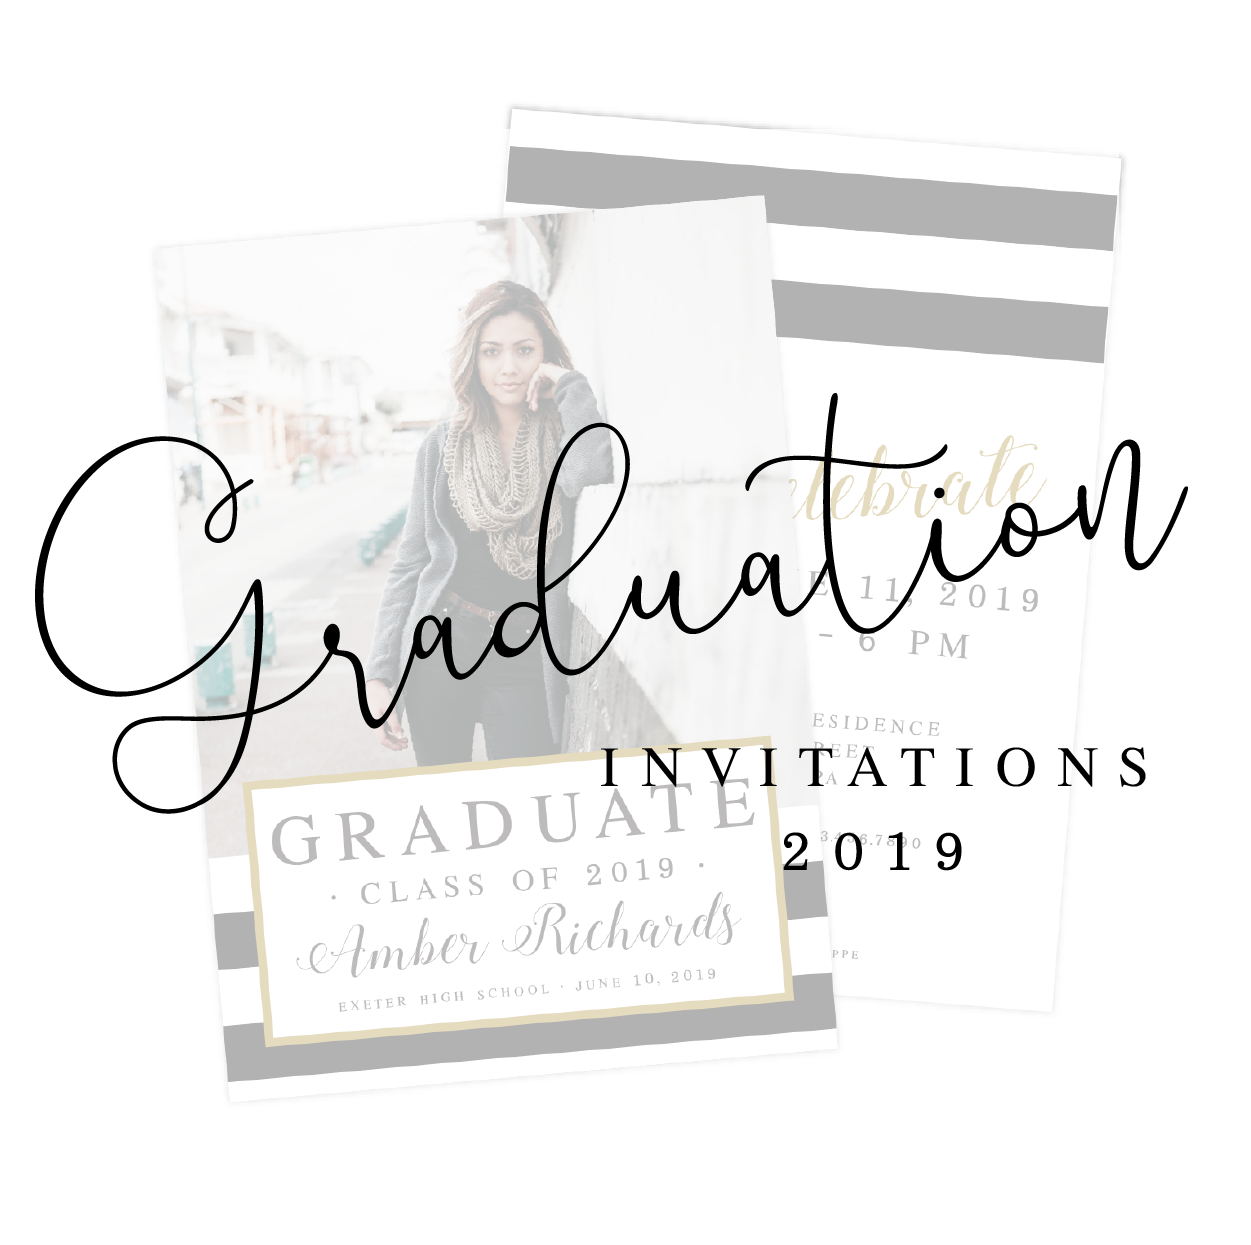 2019 Graduation Announcements and Party Invitations